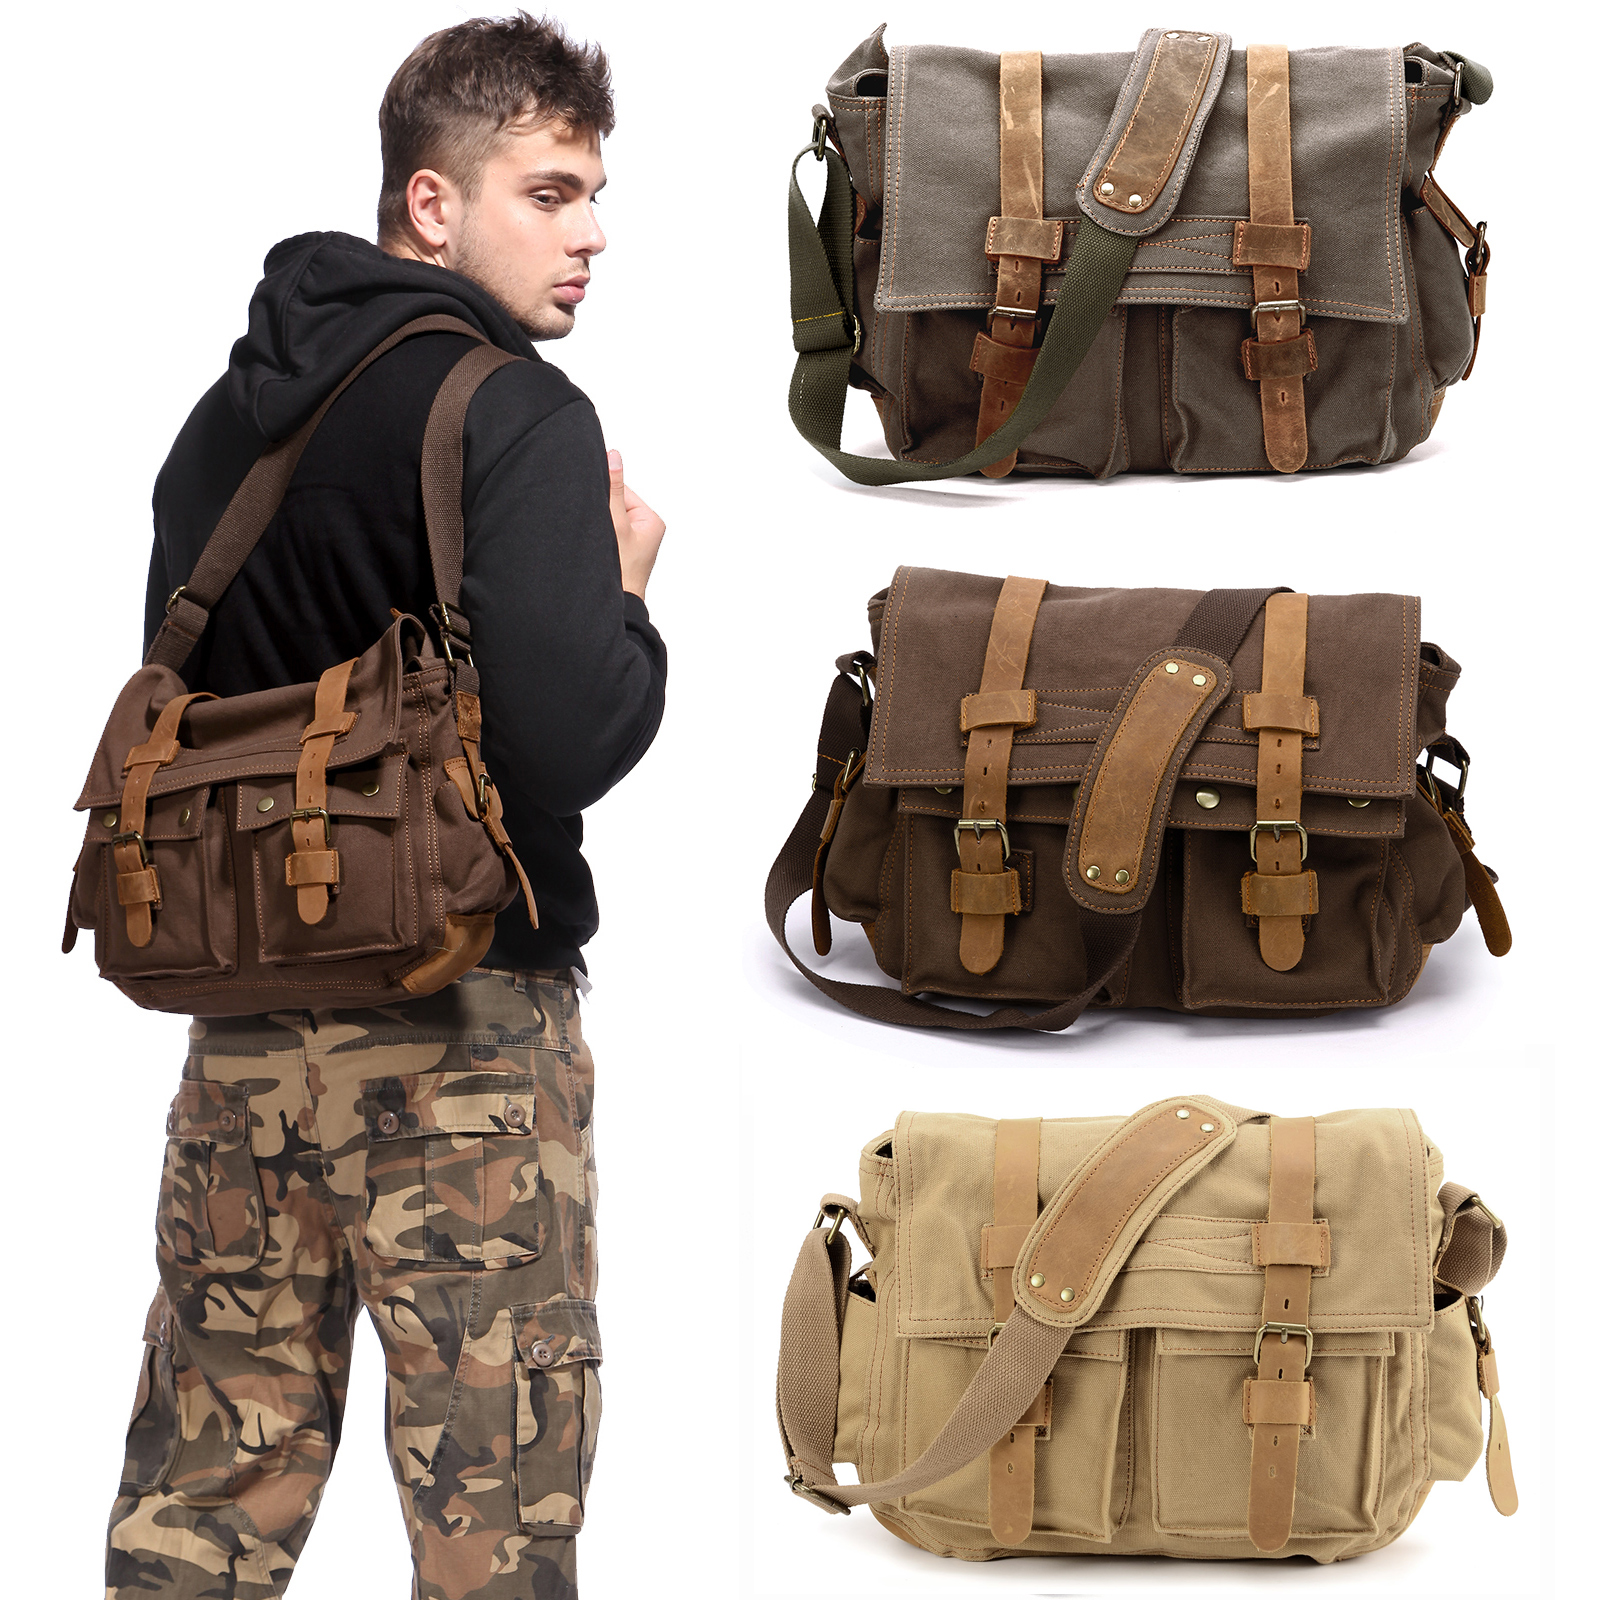 XUBA Men Canvas Retro Style Crossbody Bag Military Army Vintage Messenger Bags Shoulder Bag